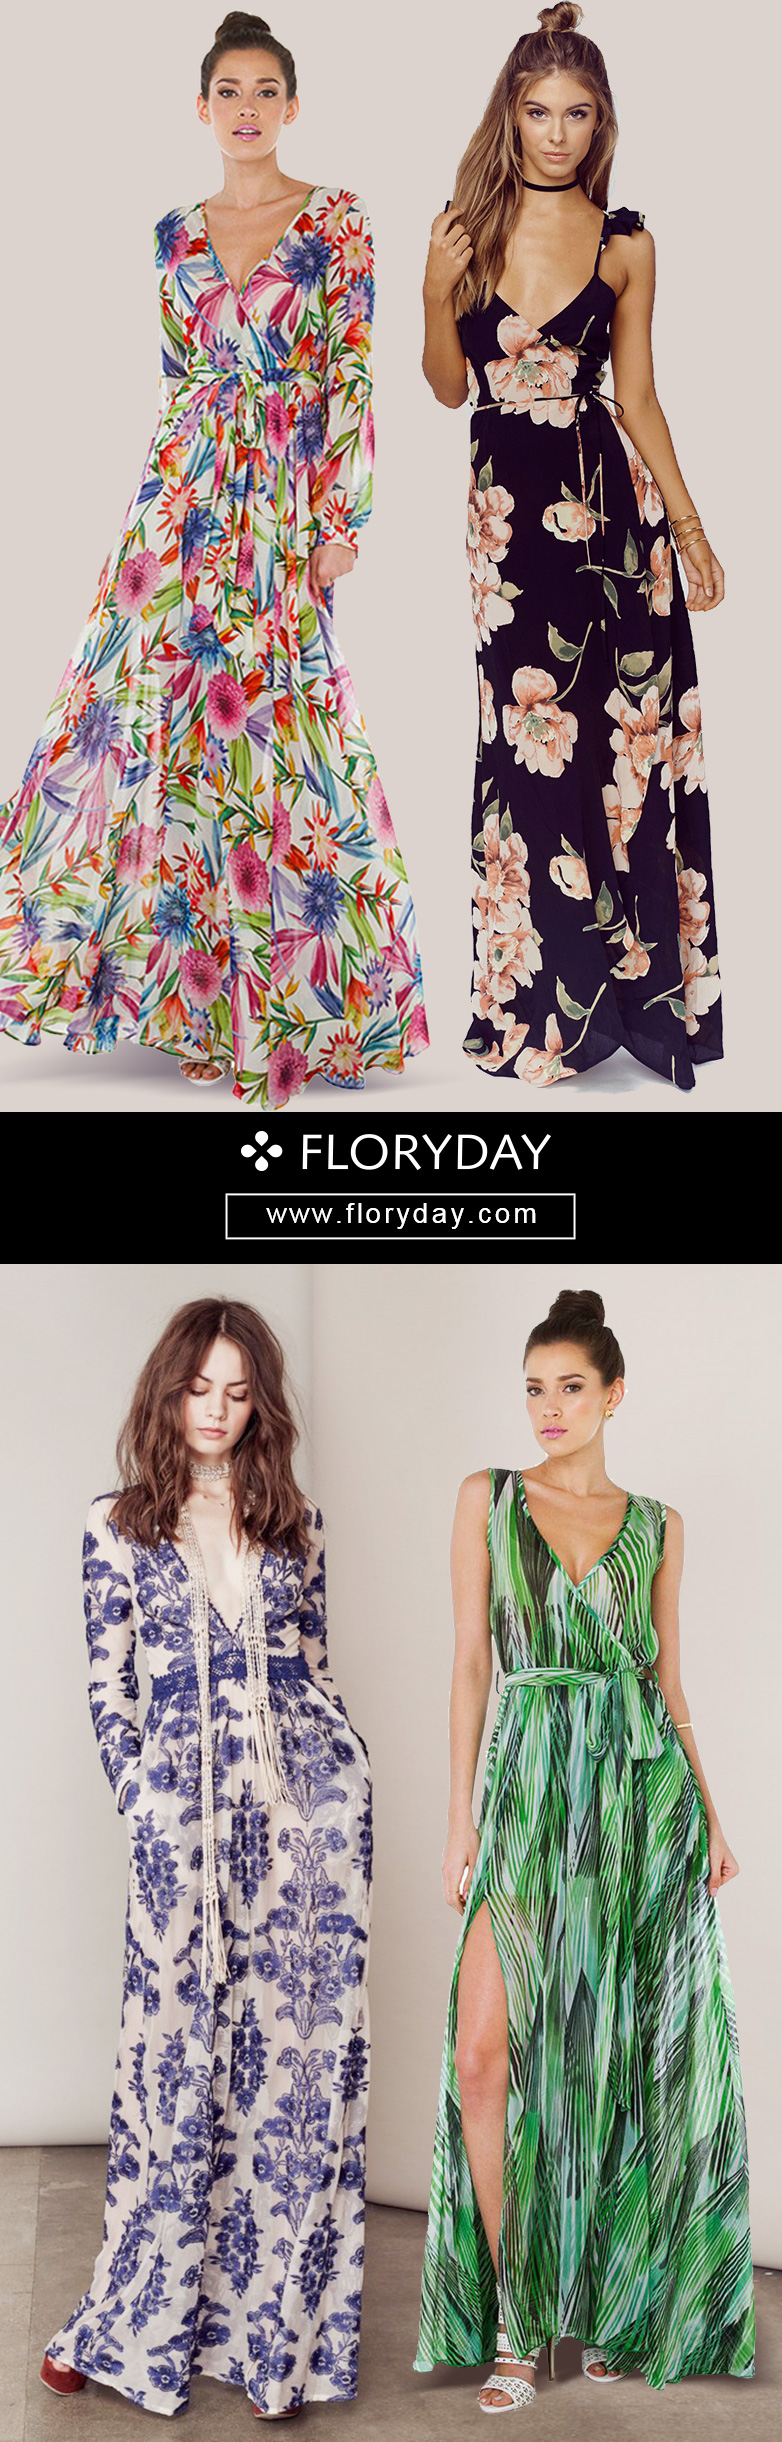 Shop the latest trends in women's clothing at Floryday! All the new wardrobe must-haves are ready for you. It is time to dress to impress! View more at www.floryday.com.